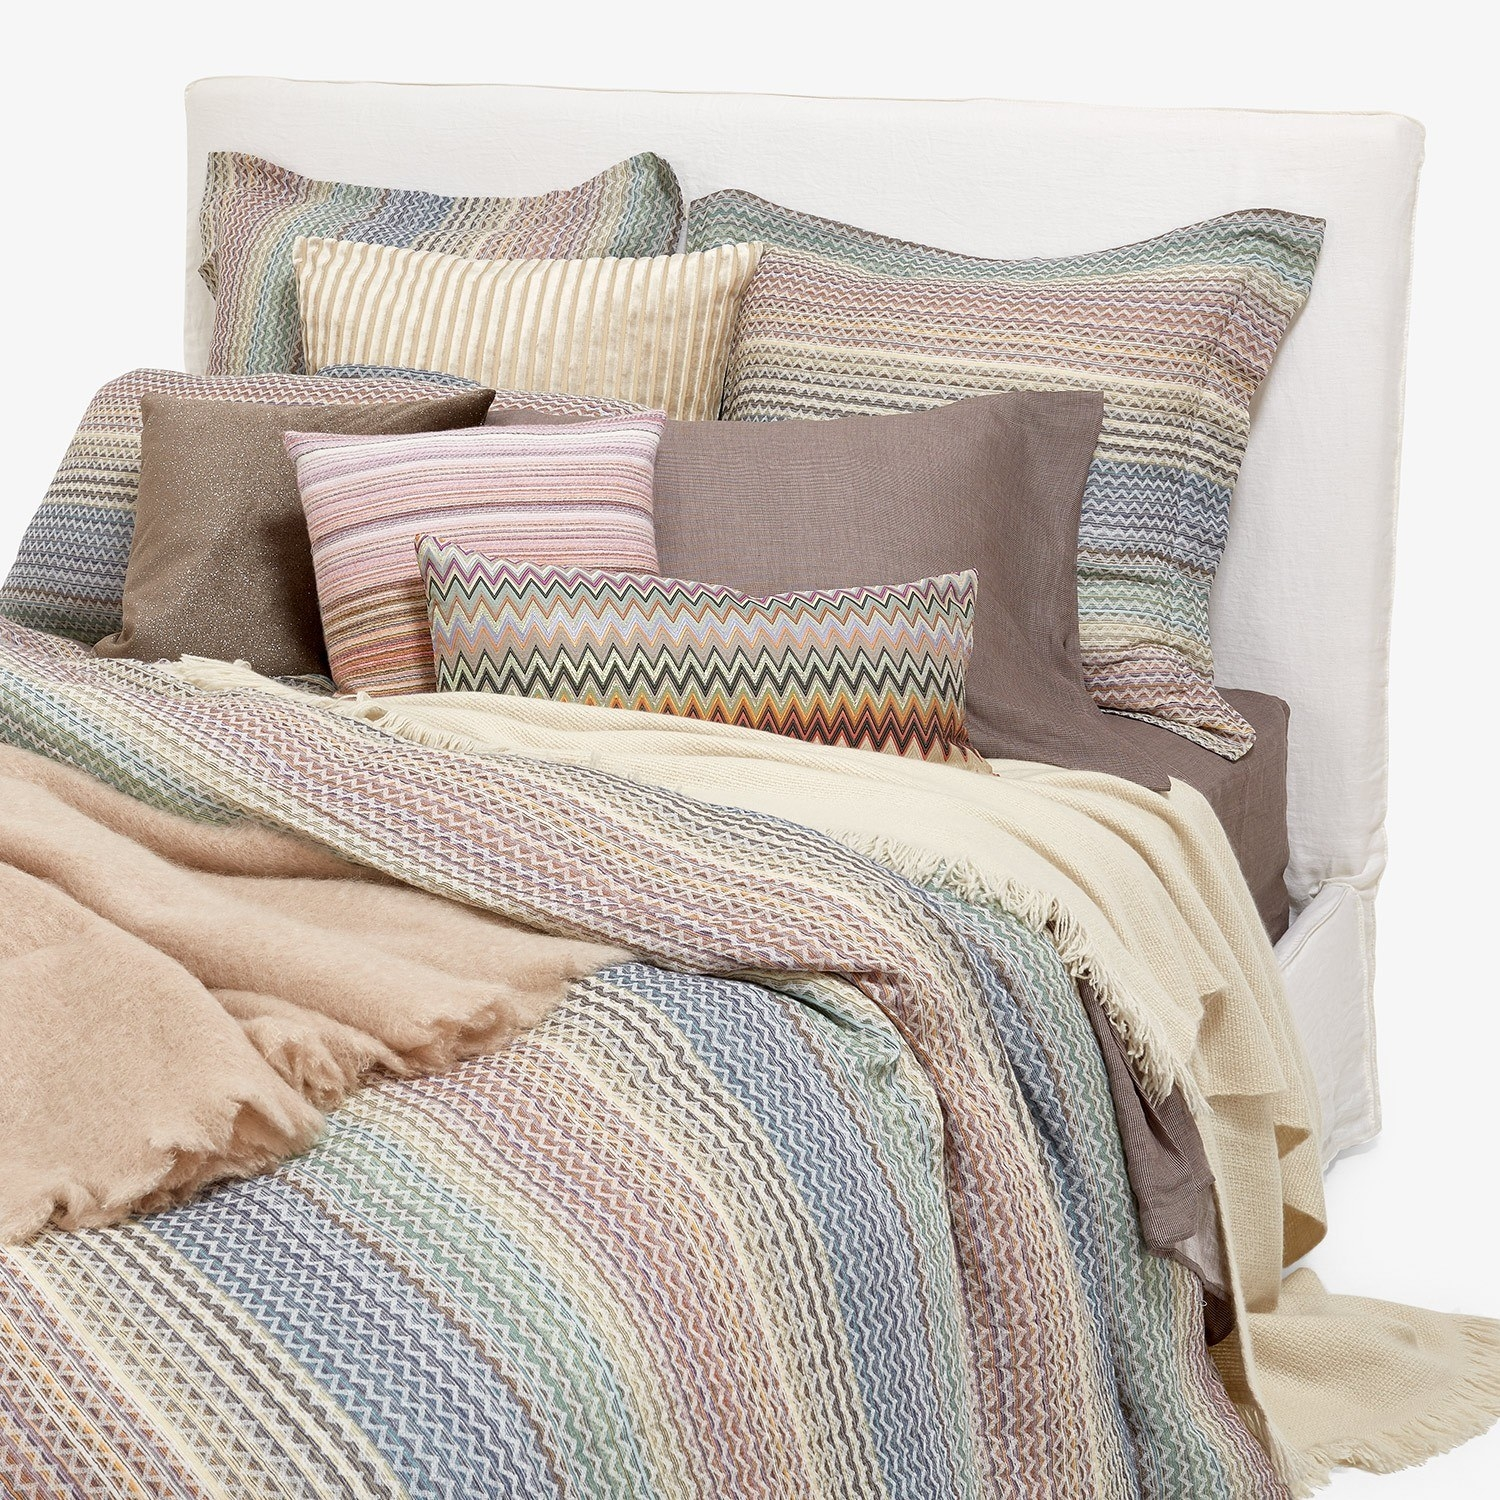 11 Best Missonihome Artifort Images On Pinterest: Here Are The Places That Sell The Best Bedding Online